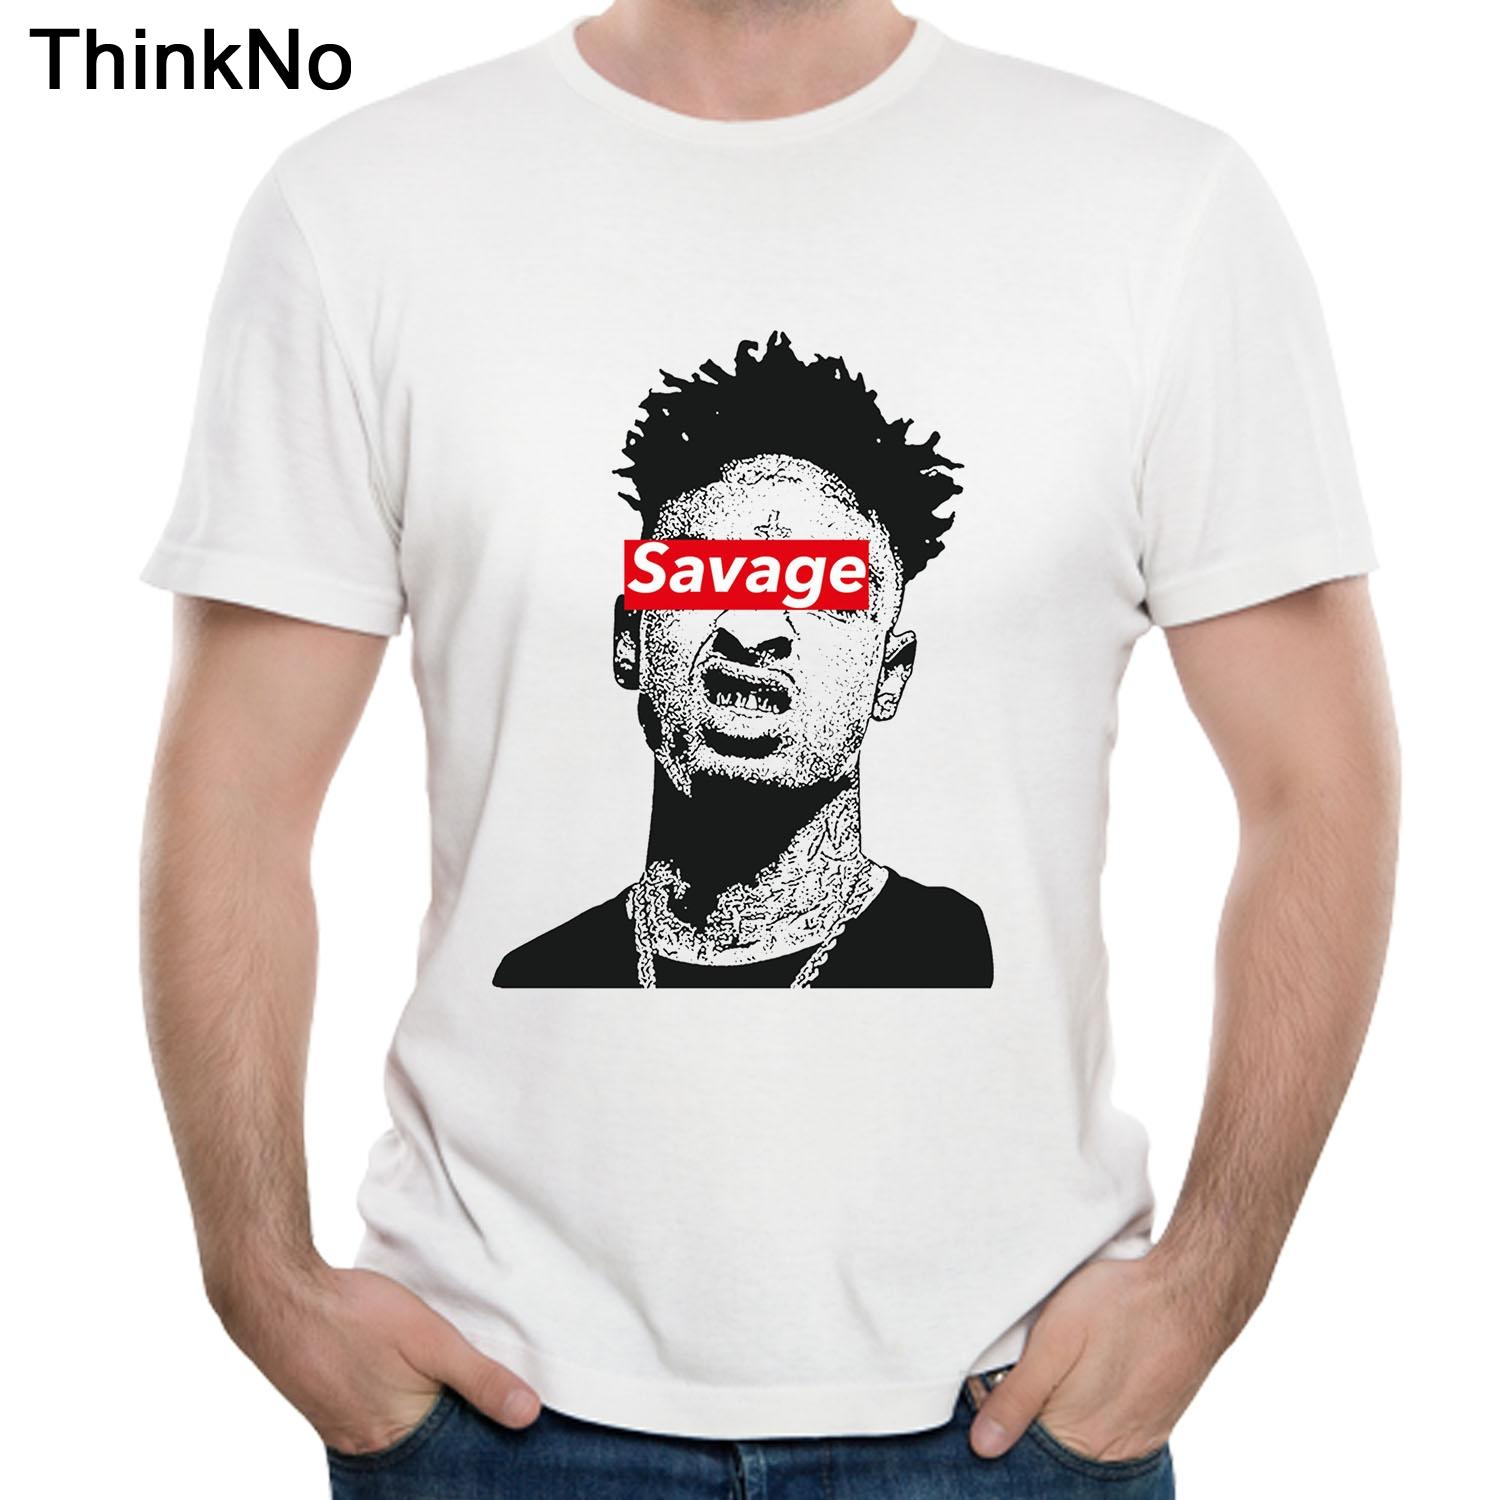 c6f5a6b0ca3 21 Savage T Shirt Plus Size Fashionable Tees Casual Summer Tees Singer Tees  Streetwear Breathable Hip Hop Camiseta T Shirt Sayings Retro T Shirt From  ...